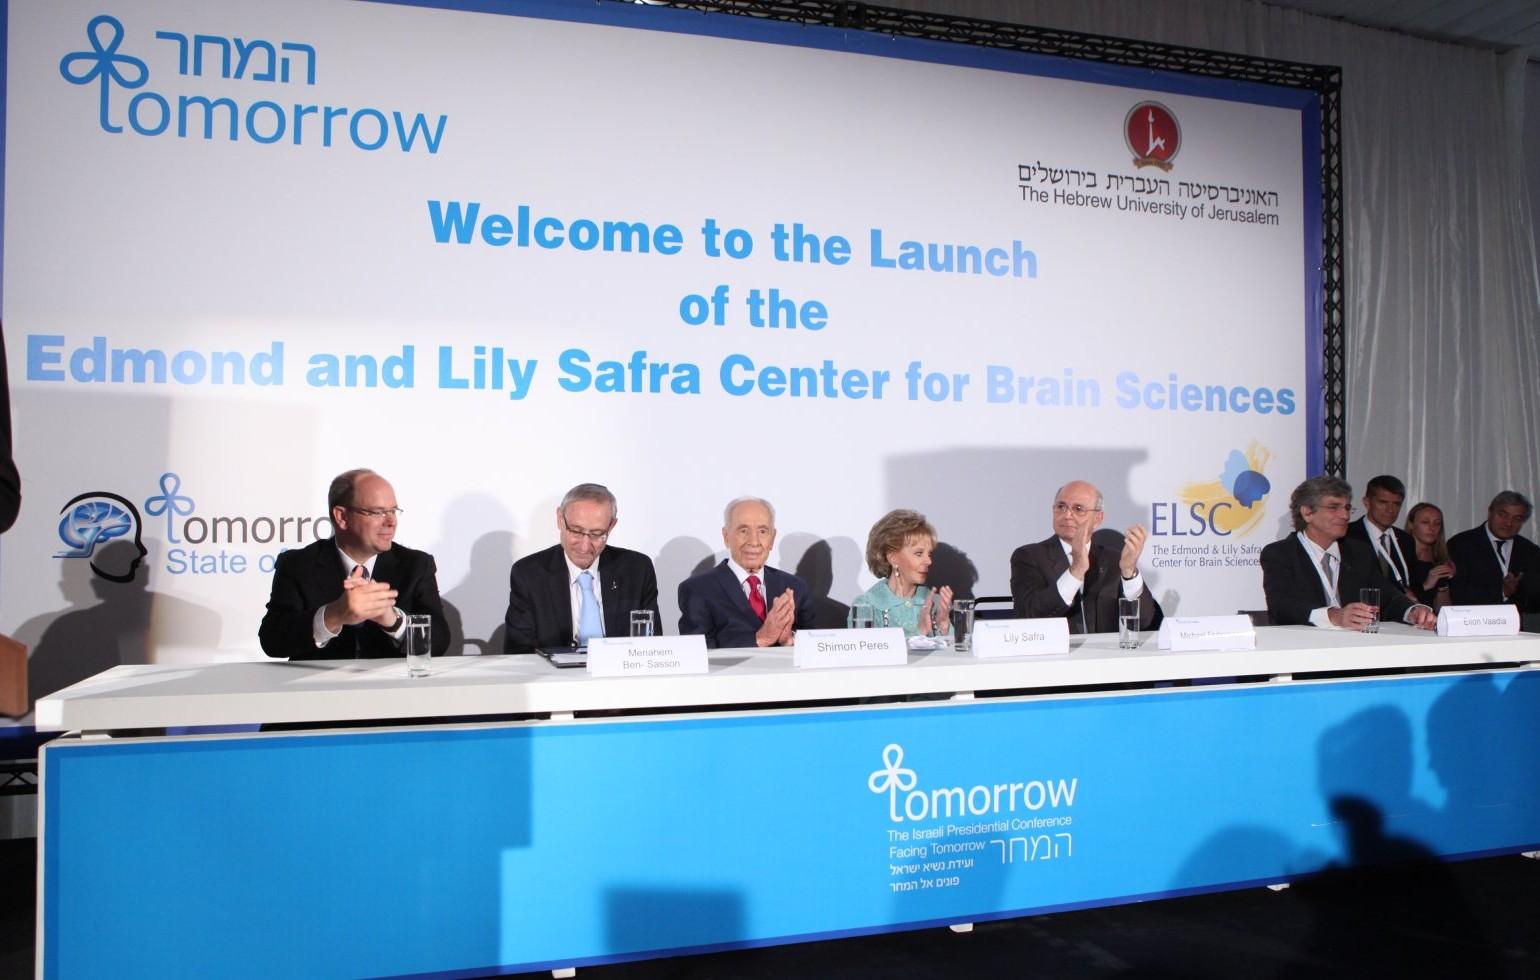 Israeli scientists reveal brain research projects and innovations at presidential conference